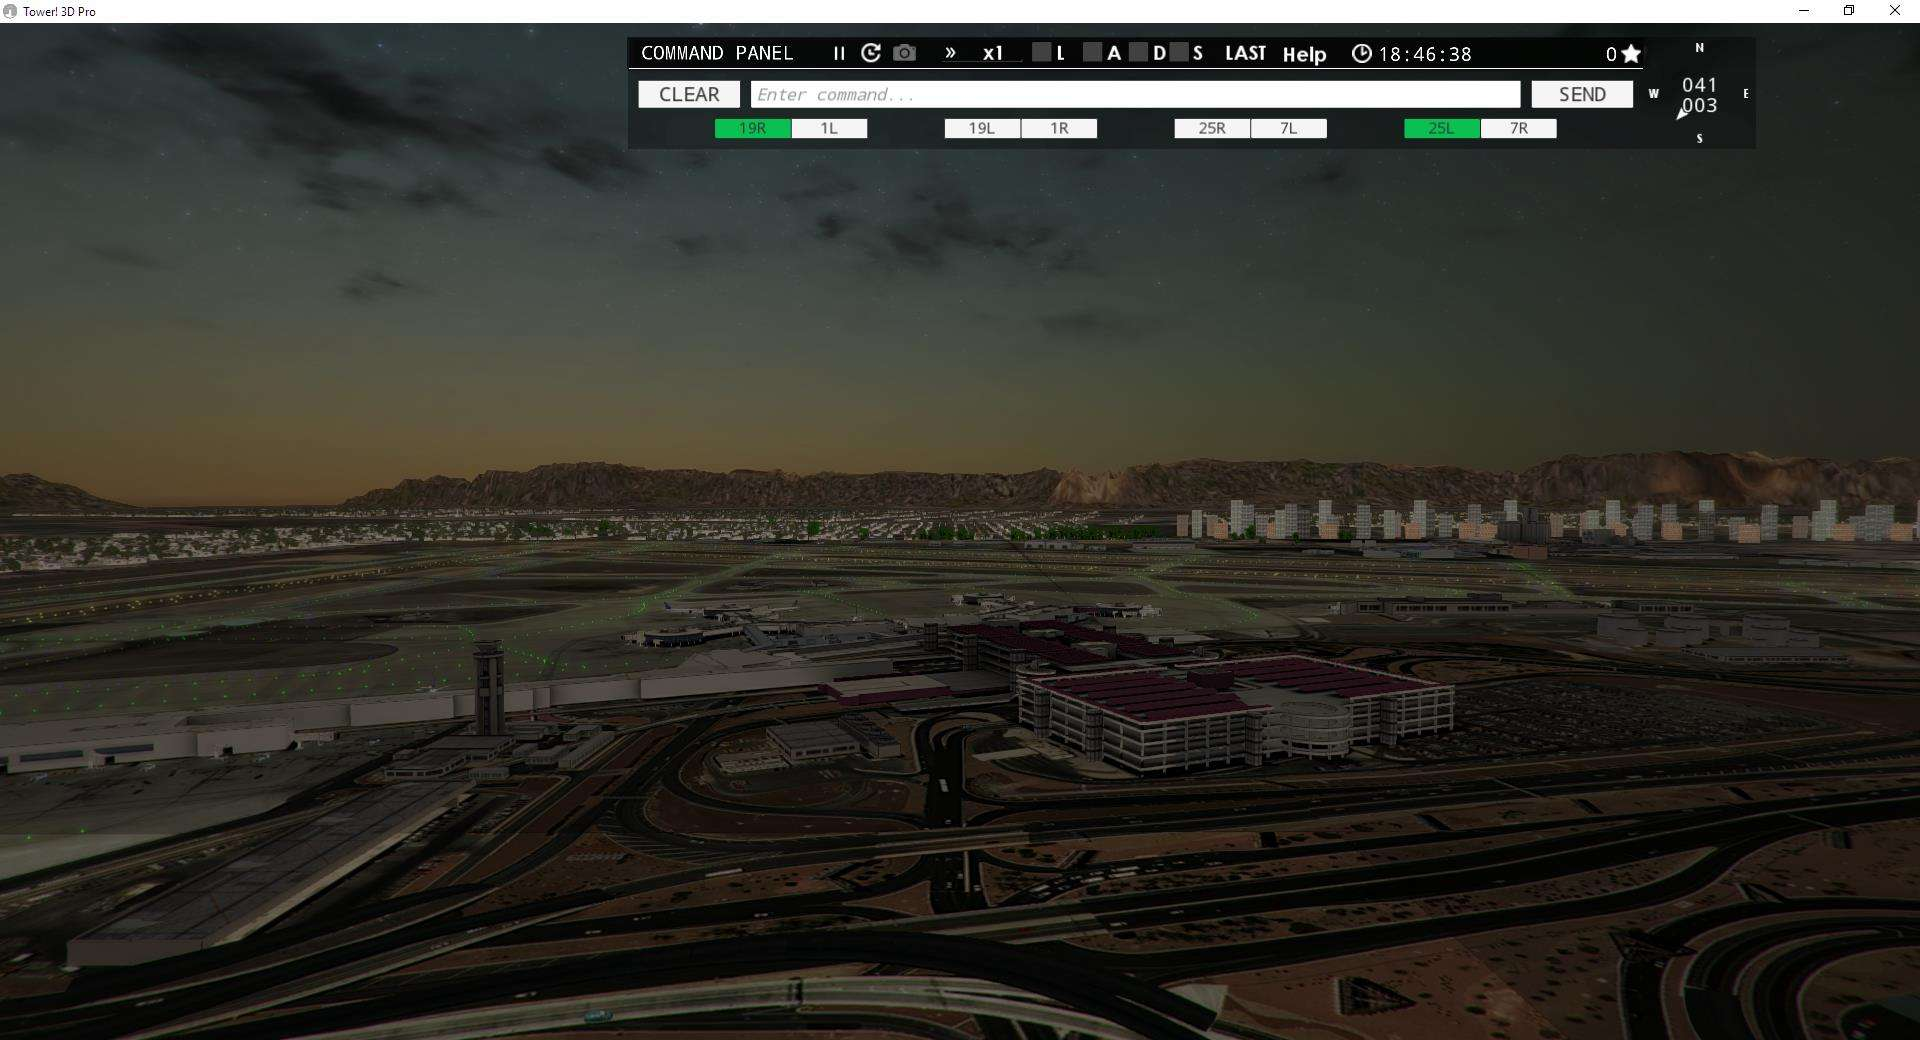 FEELTHERE - LAS VEGAS FOR TOWER!3D AND TOWER!3D PRO